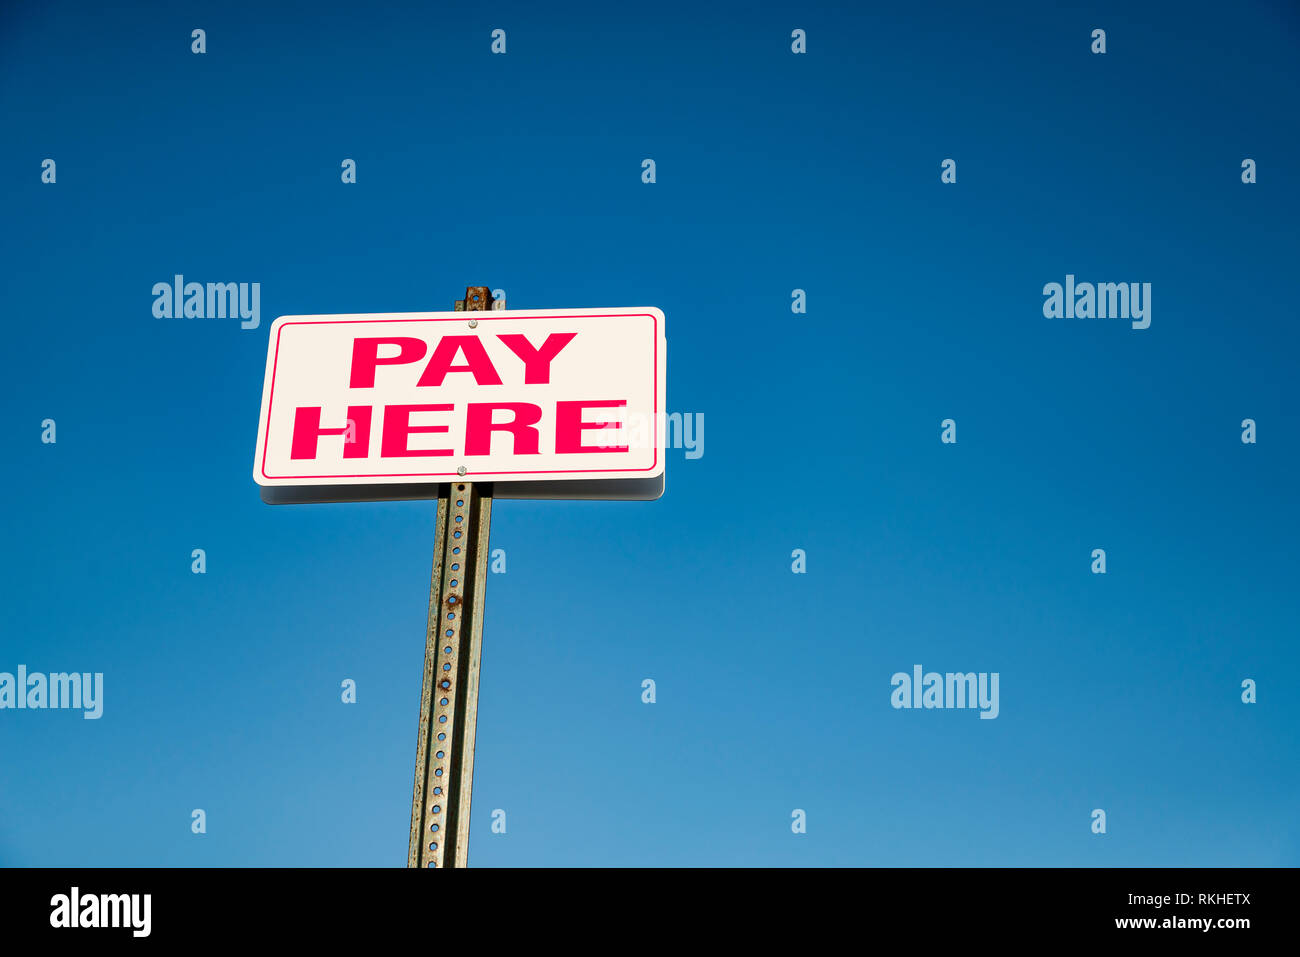 Pay Here signboard on top of an exterior wall with parked cars - Stock Image